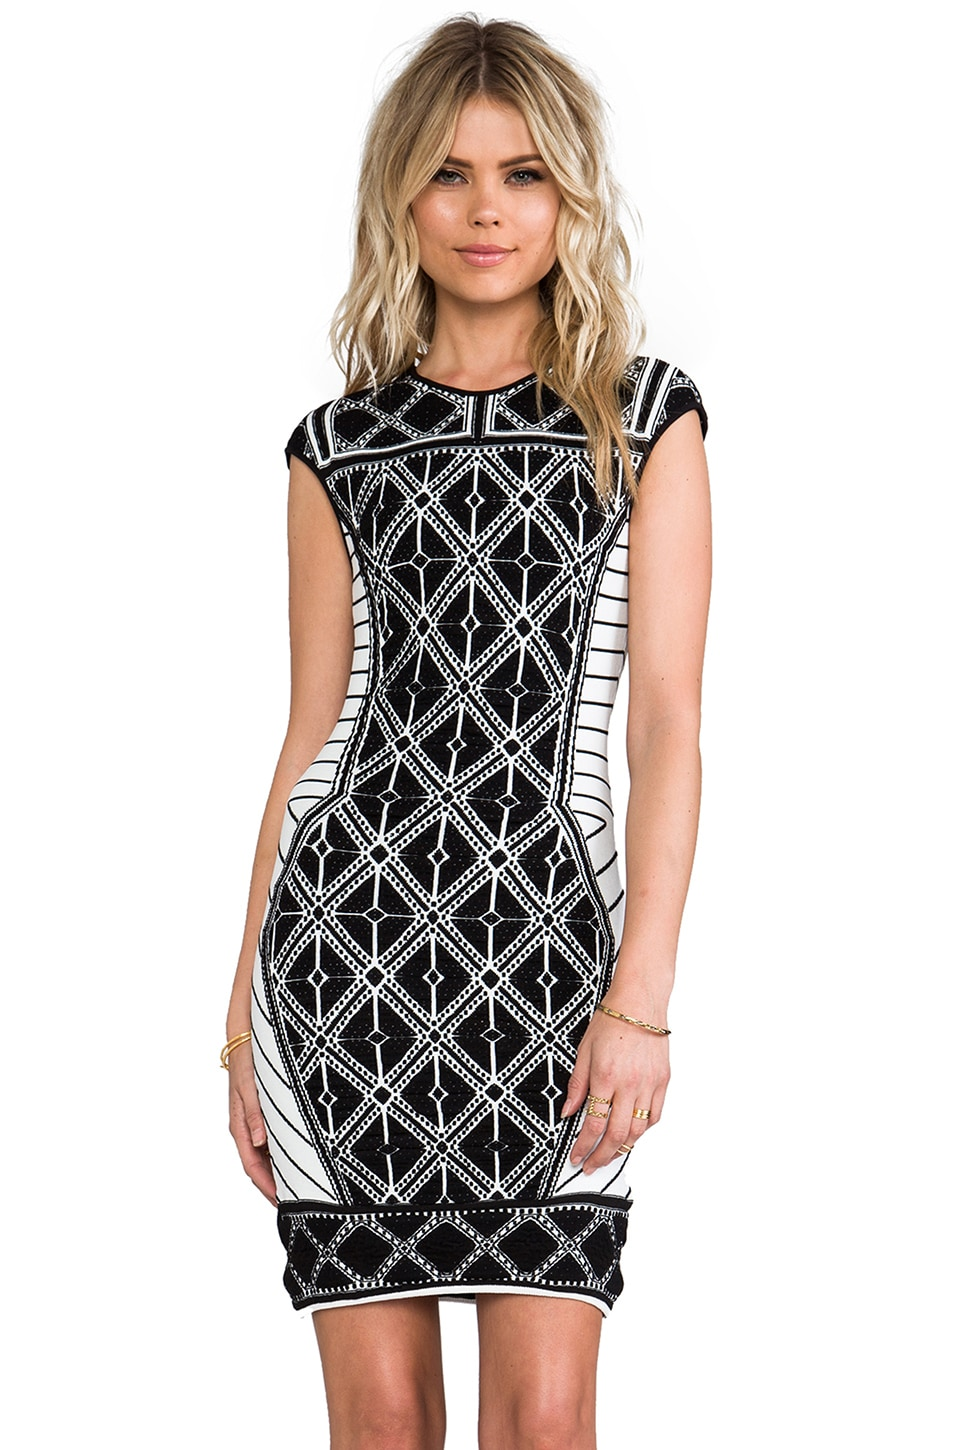 RVN Diamond 3D Jacquard Dress in Black & White